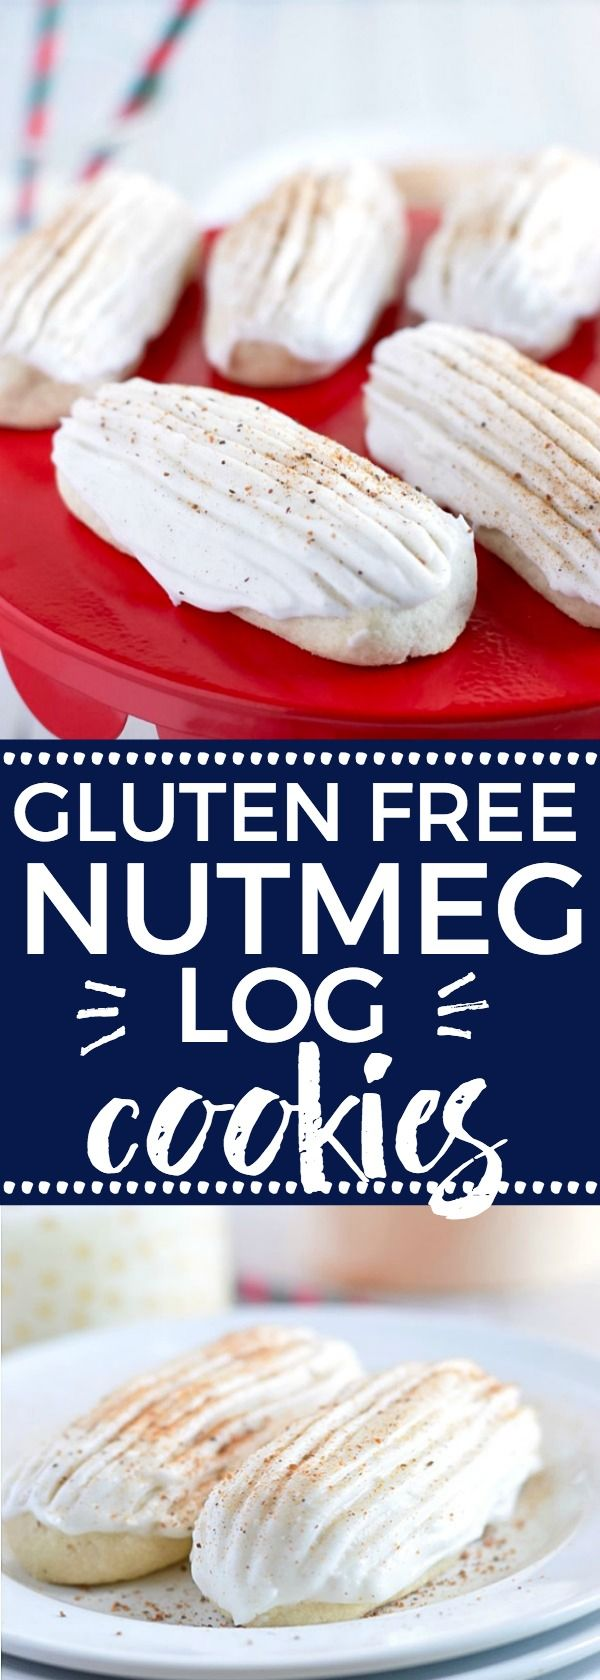 Easy Gluten Free Nutmeg Log Cookies make a great holiday treat. gluten free cookie recipe